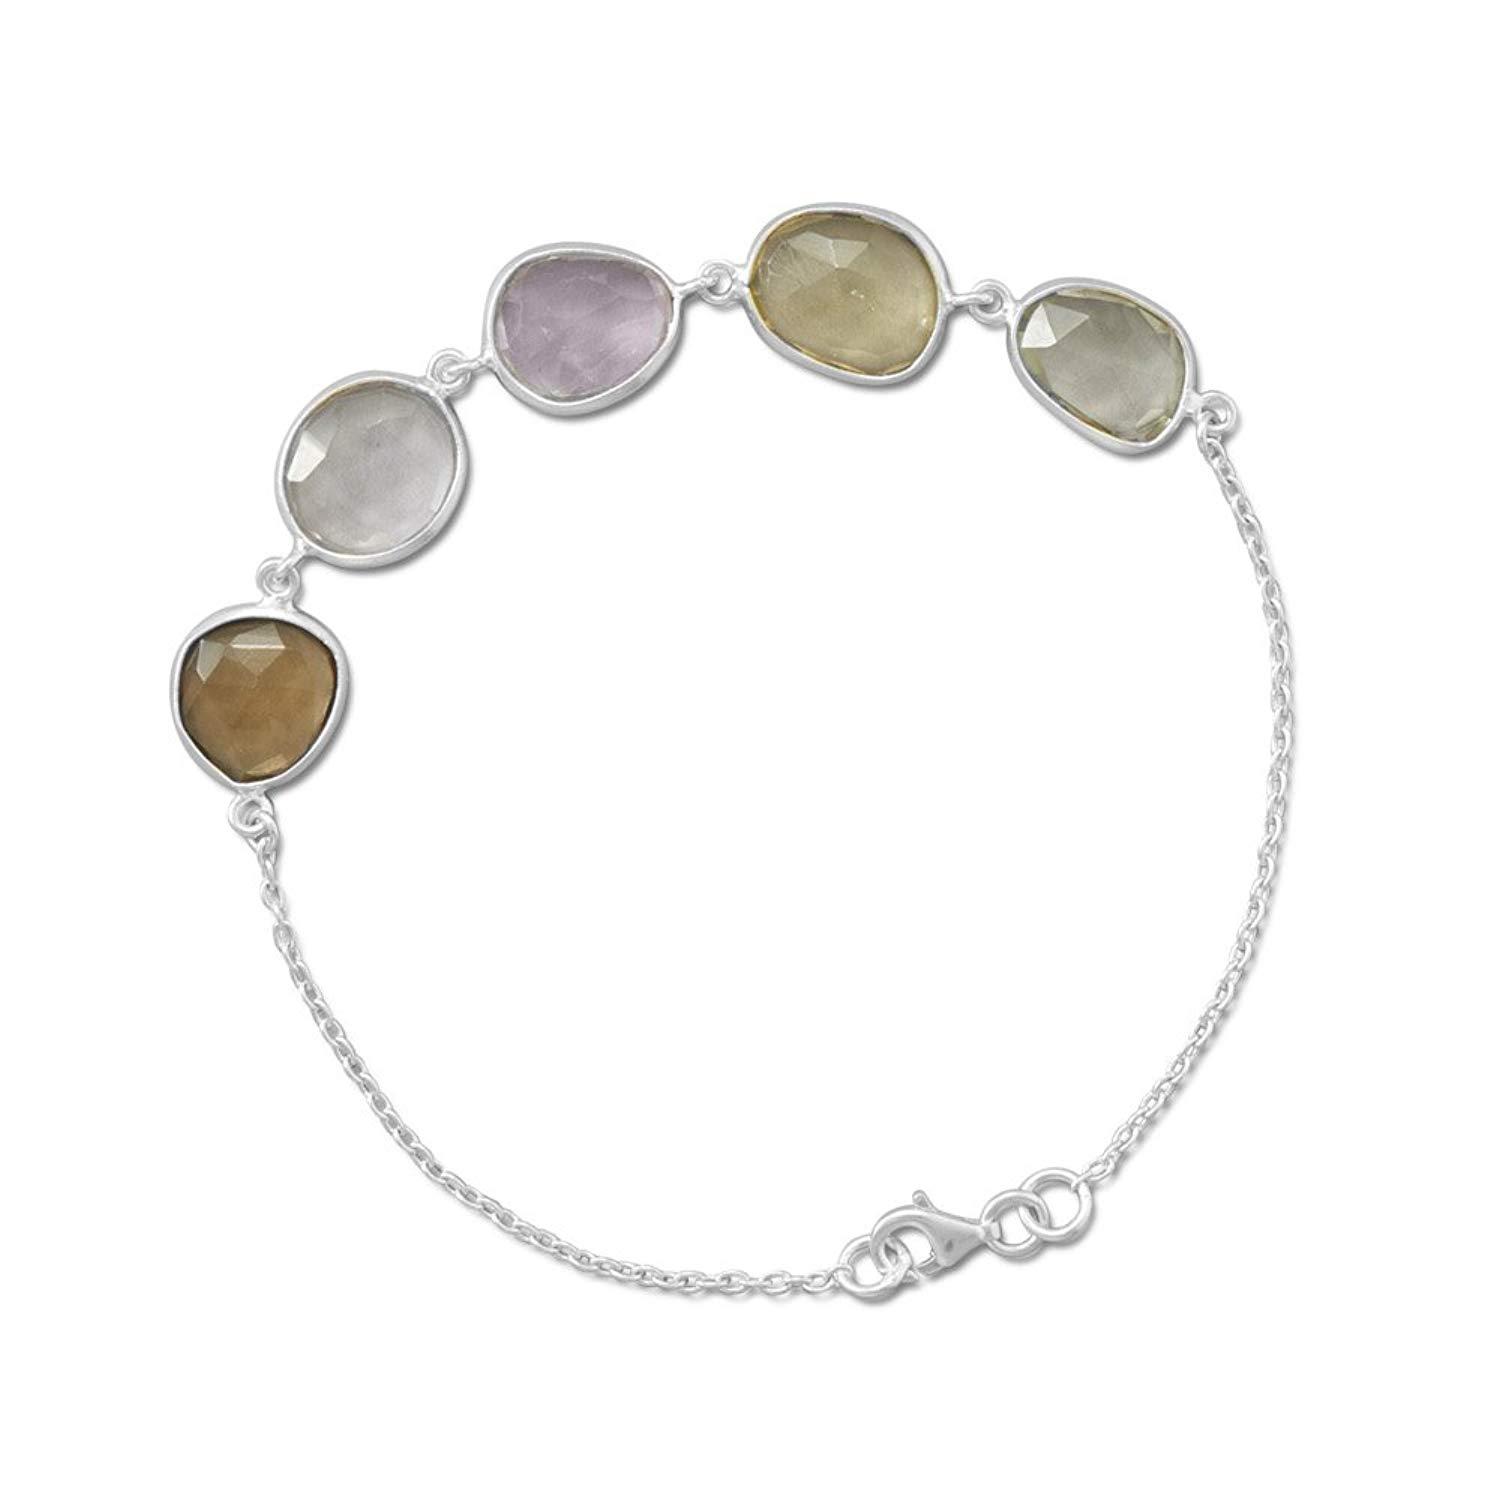 7+1 inch Ext. Chain Sterling Silver Bracelet ONLY, Lemon/Clear/Golden Quartz, Pink/Green Amethyst